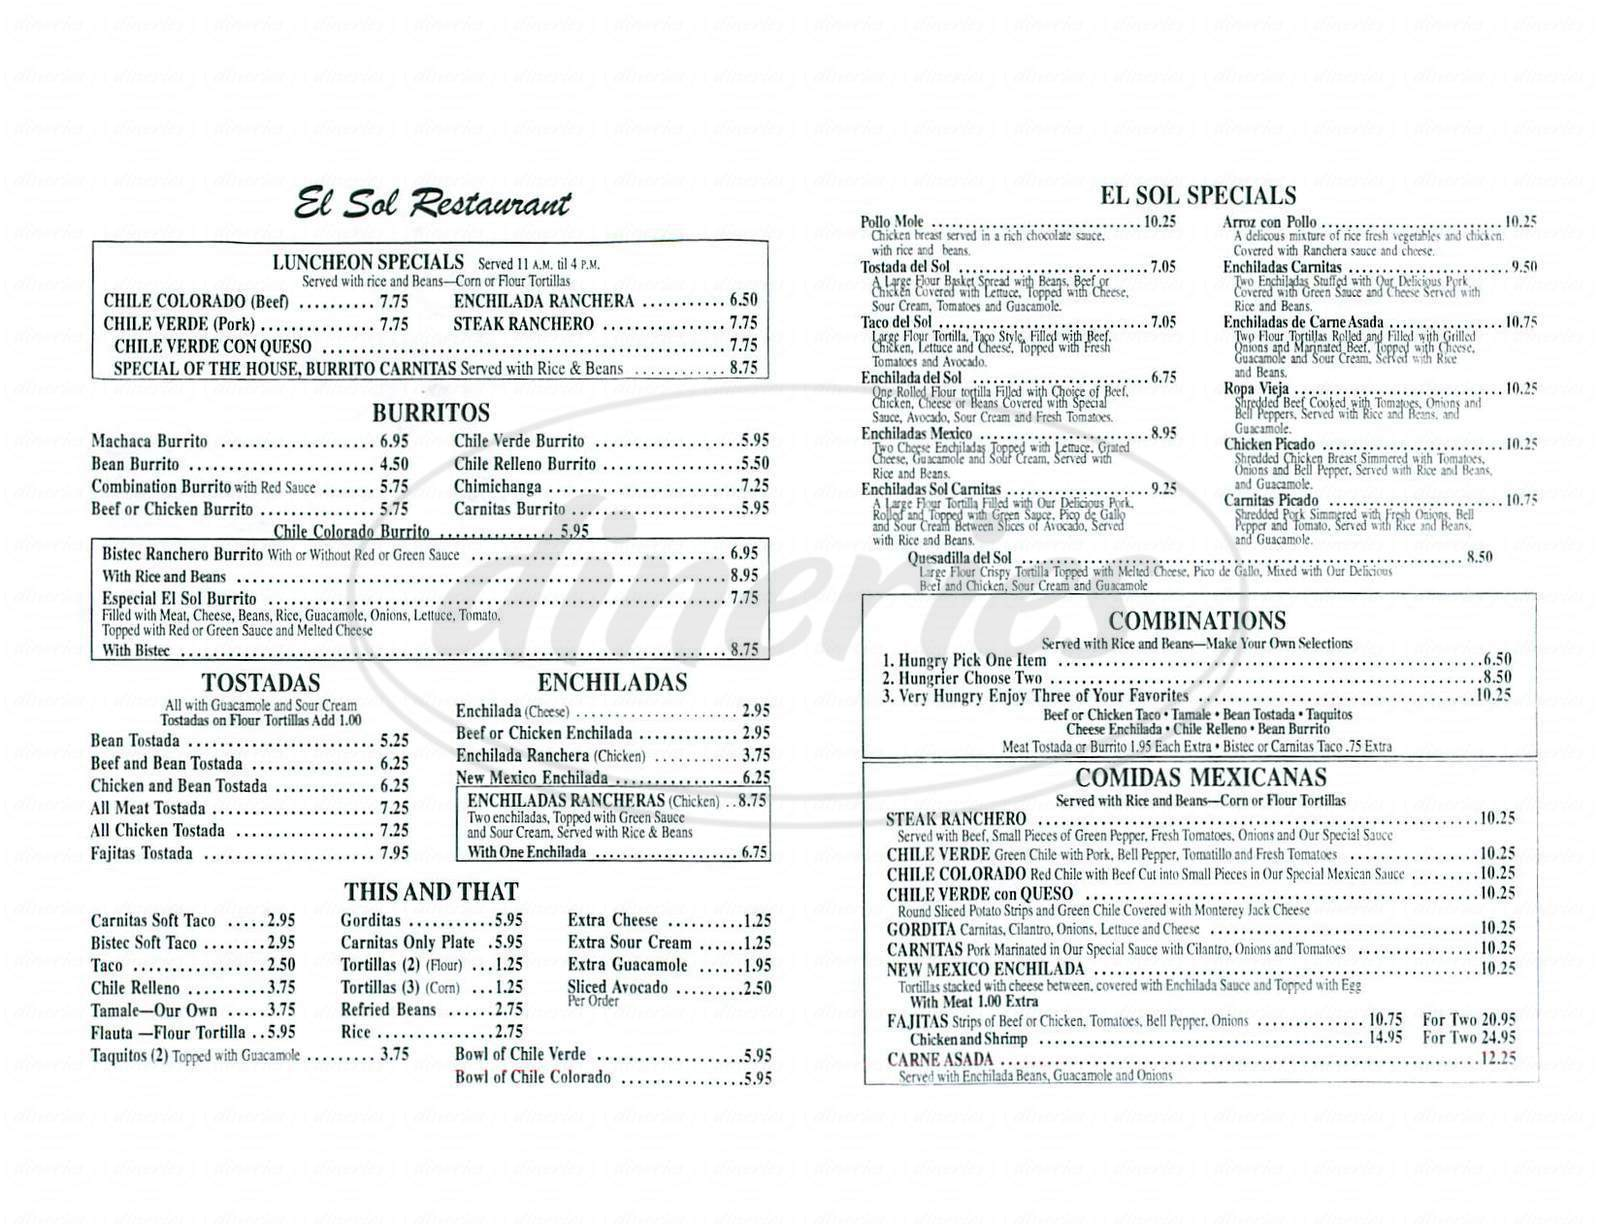 menu for El Sol Restaurant